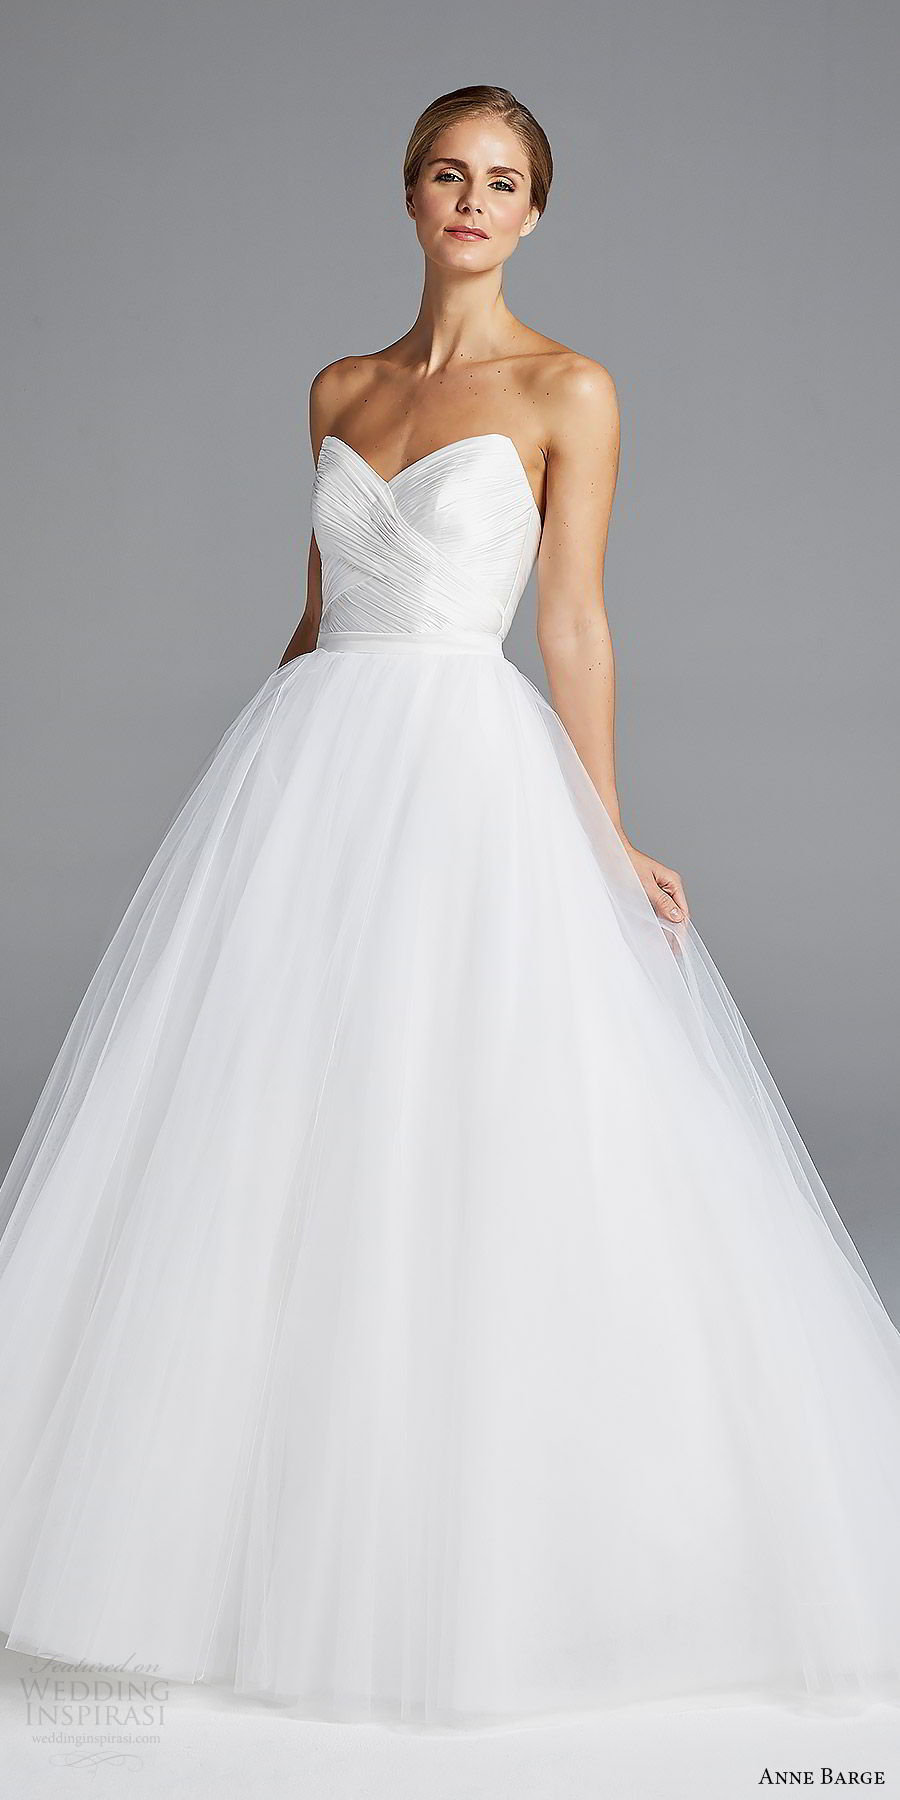 anne barge bridal spring 2019 strapless sweetheart ruched bodice mermaid wedding dress ball gown overskirt (amal) mv romantic elegant